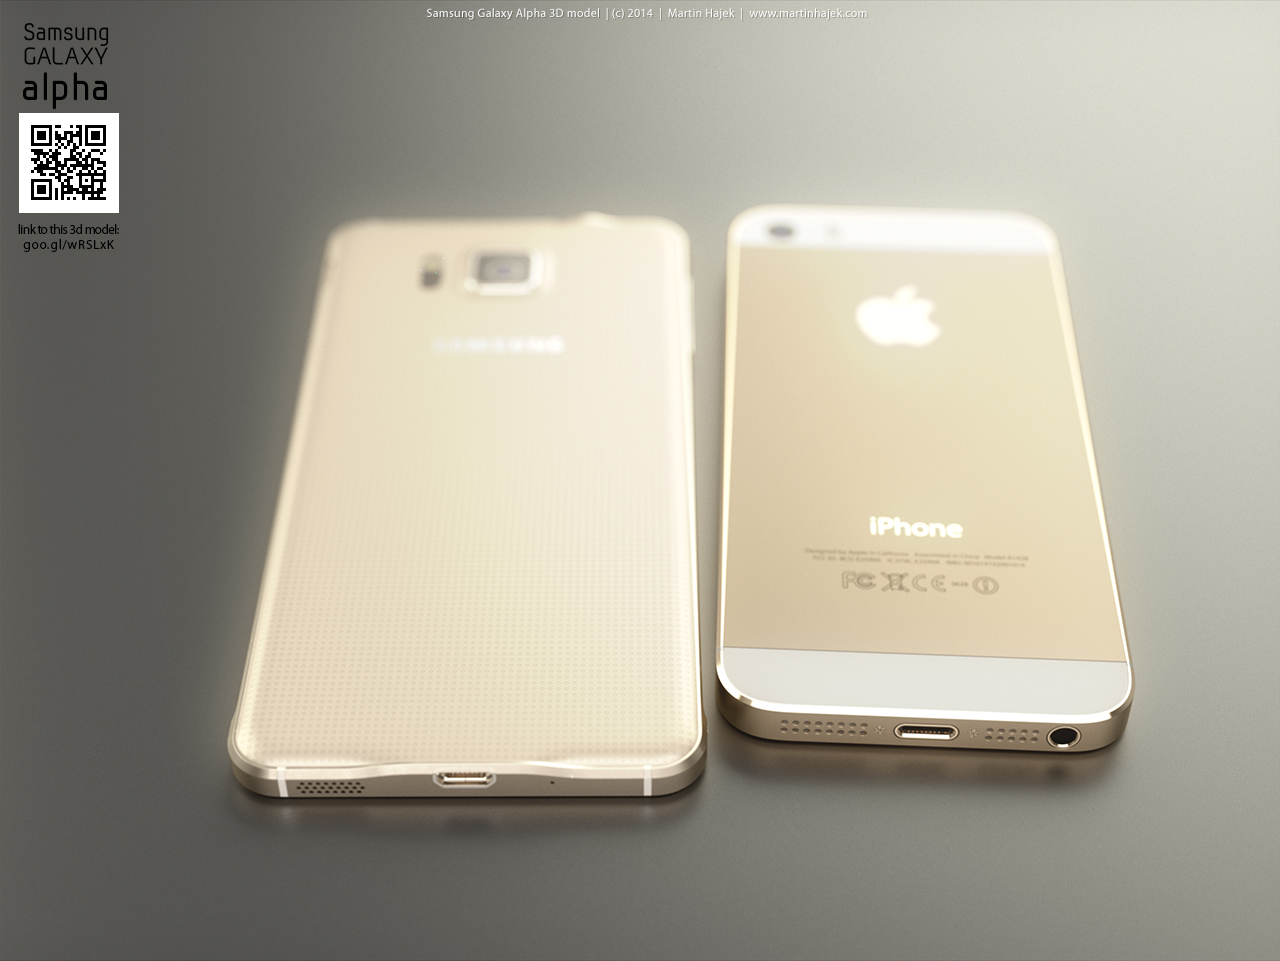 Galaxy Alpha vs. iPhone 5/6